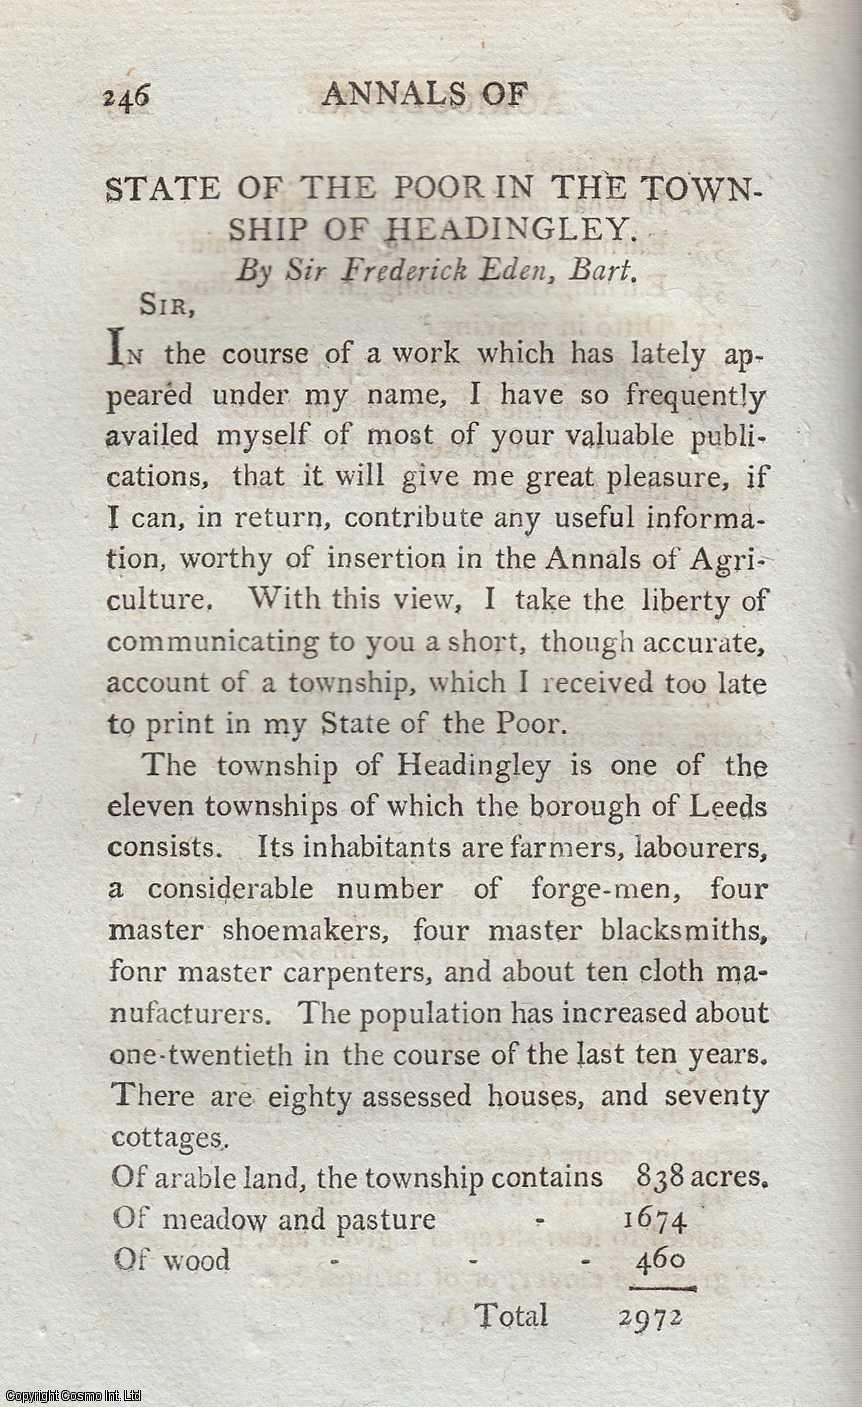 EDEN, FREDERICK - State of the Poor in the Township of Headingley. An original article from the Annals of Agriculture 1797.